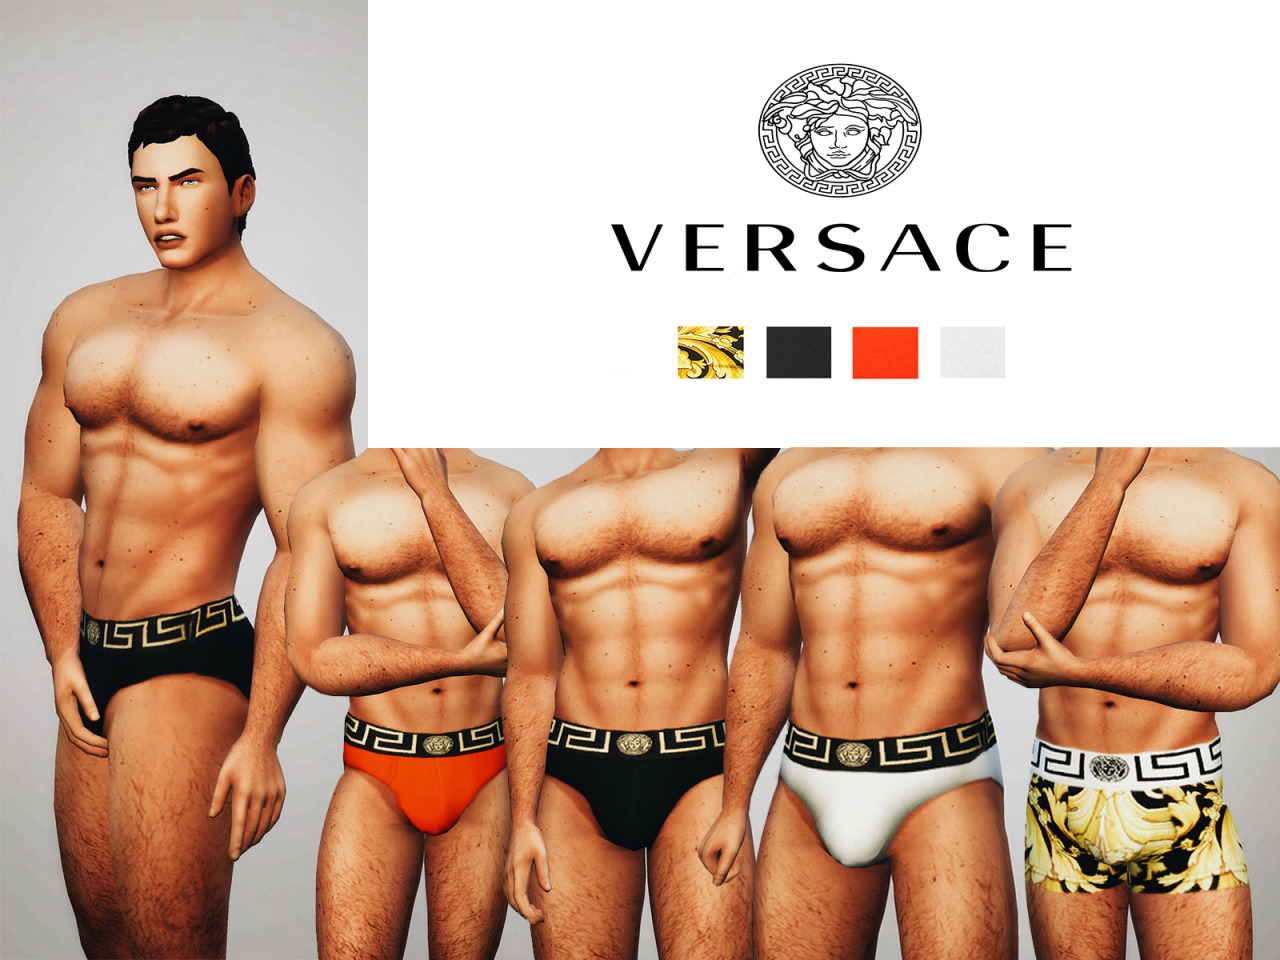 Versace Underwear Collection by OwlPlumbob